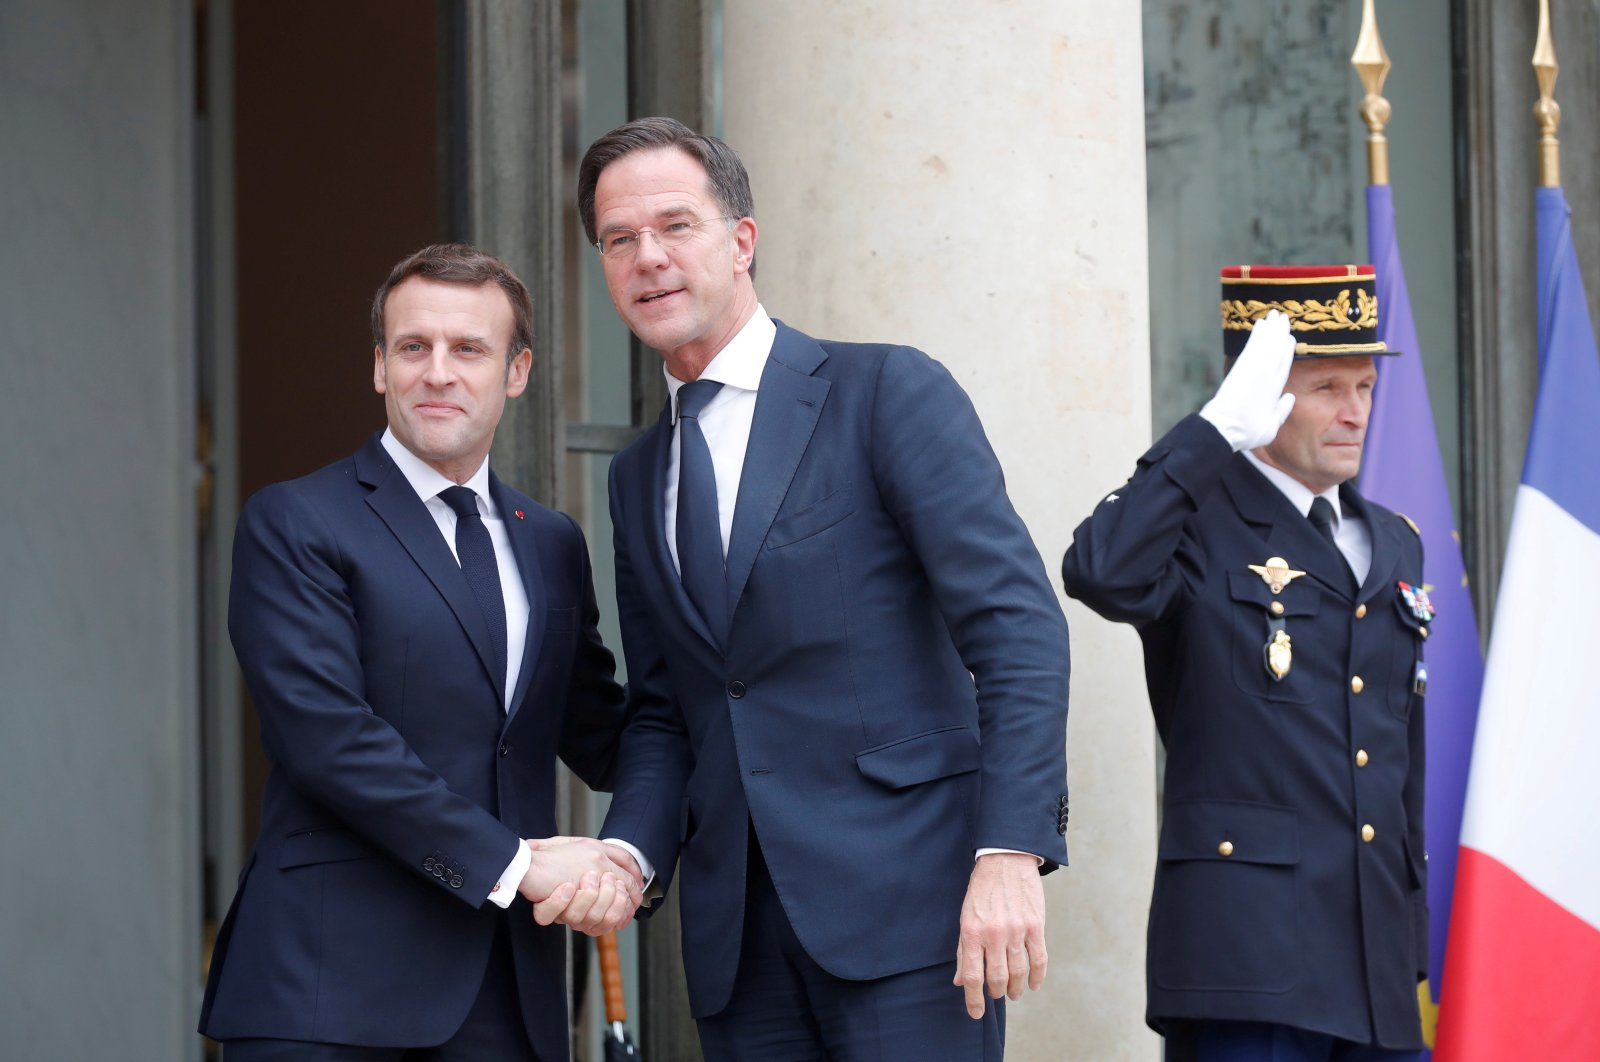 French President Emmanuel Macron welcomes Dutch Prime Minister Mark Rutte for a working lunch at the Elysee Palace in Paris, France, Feb. 14, 2020. (Reuters Photo)